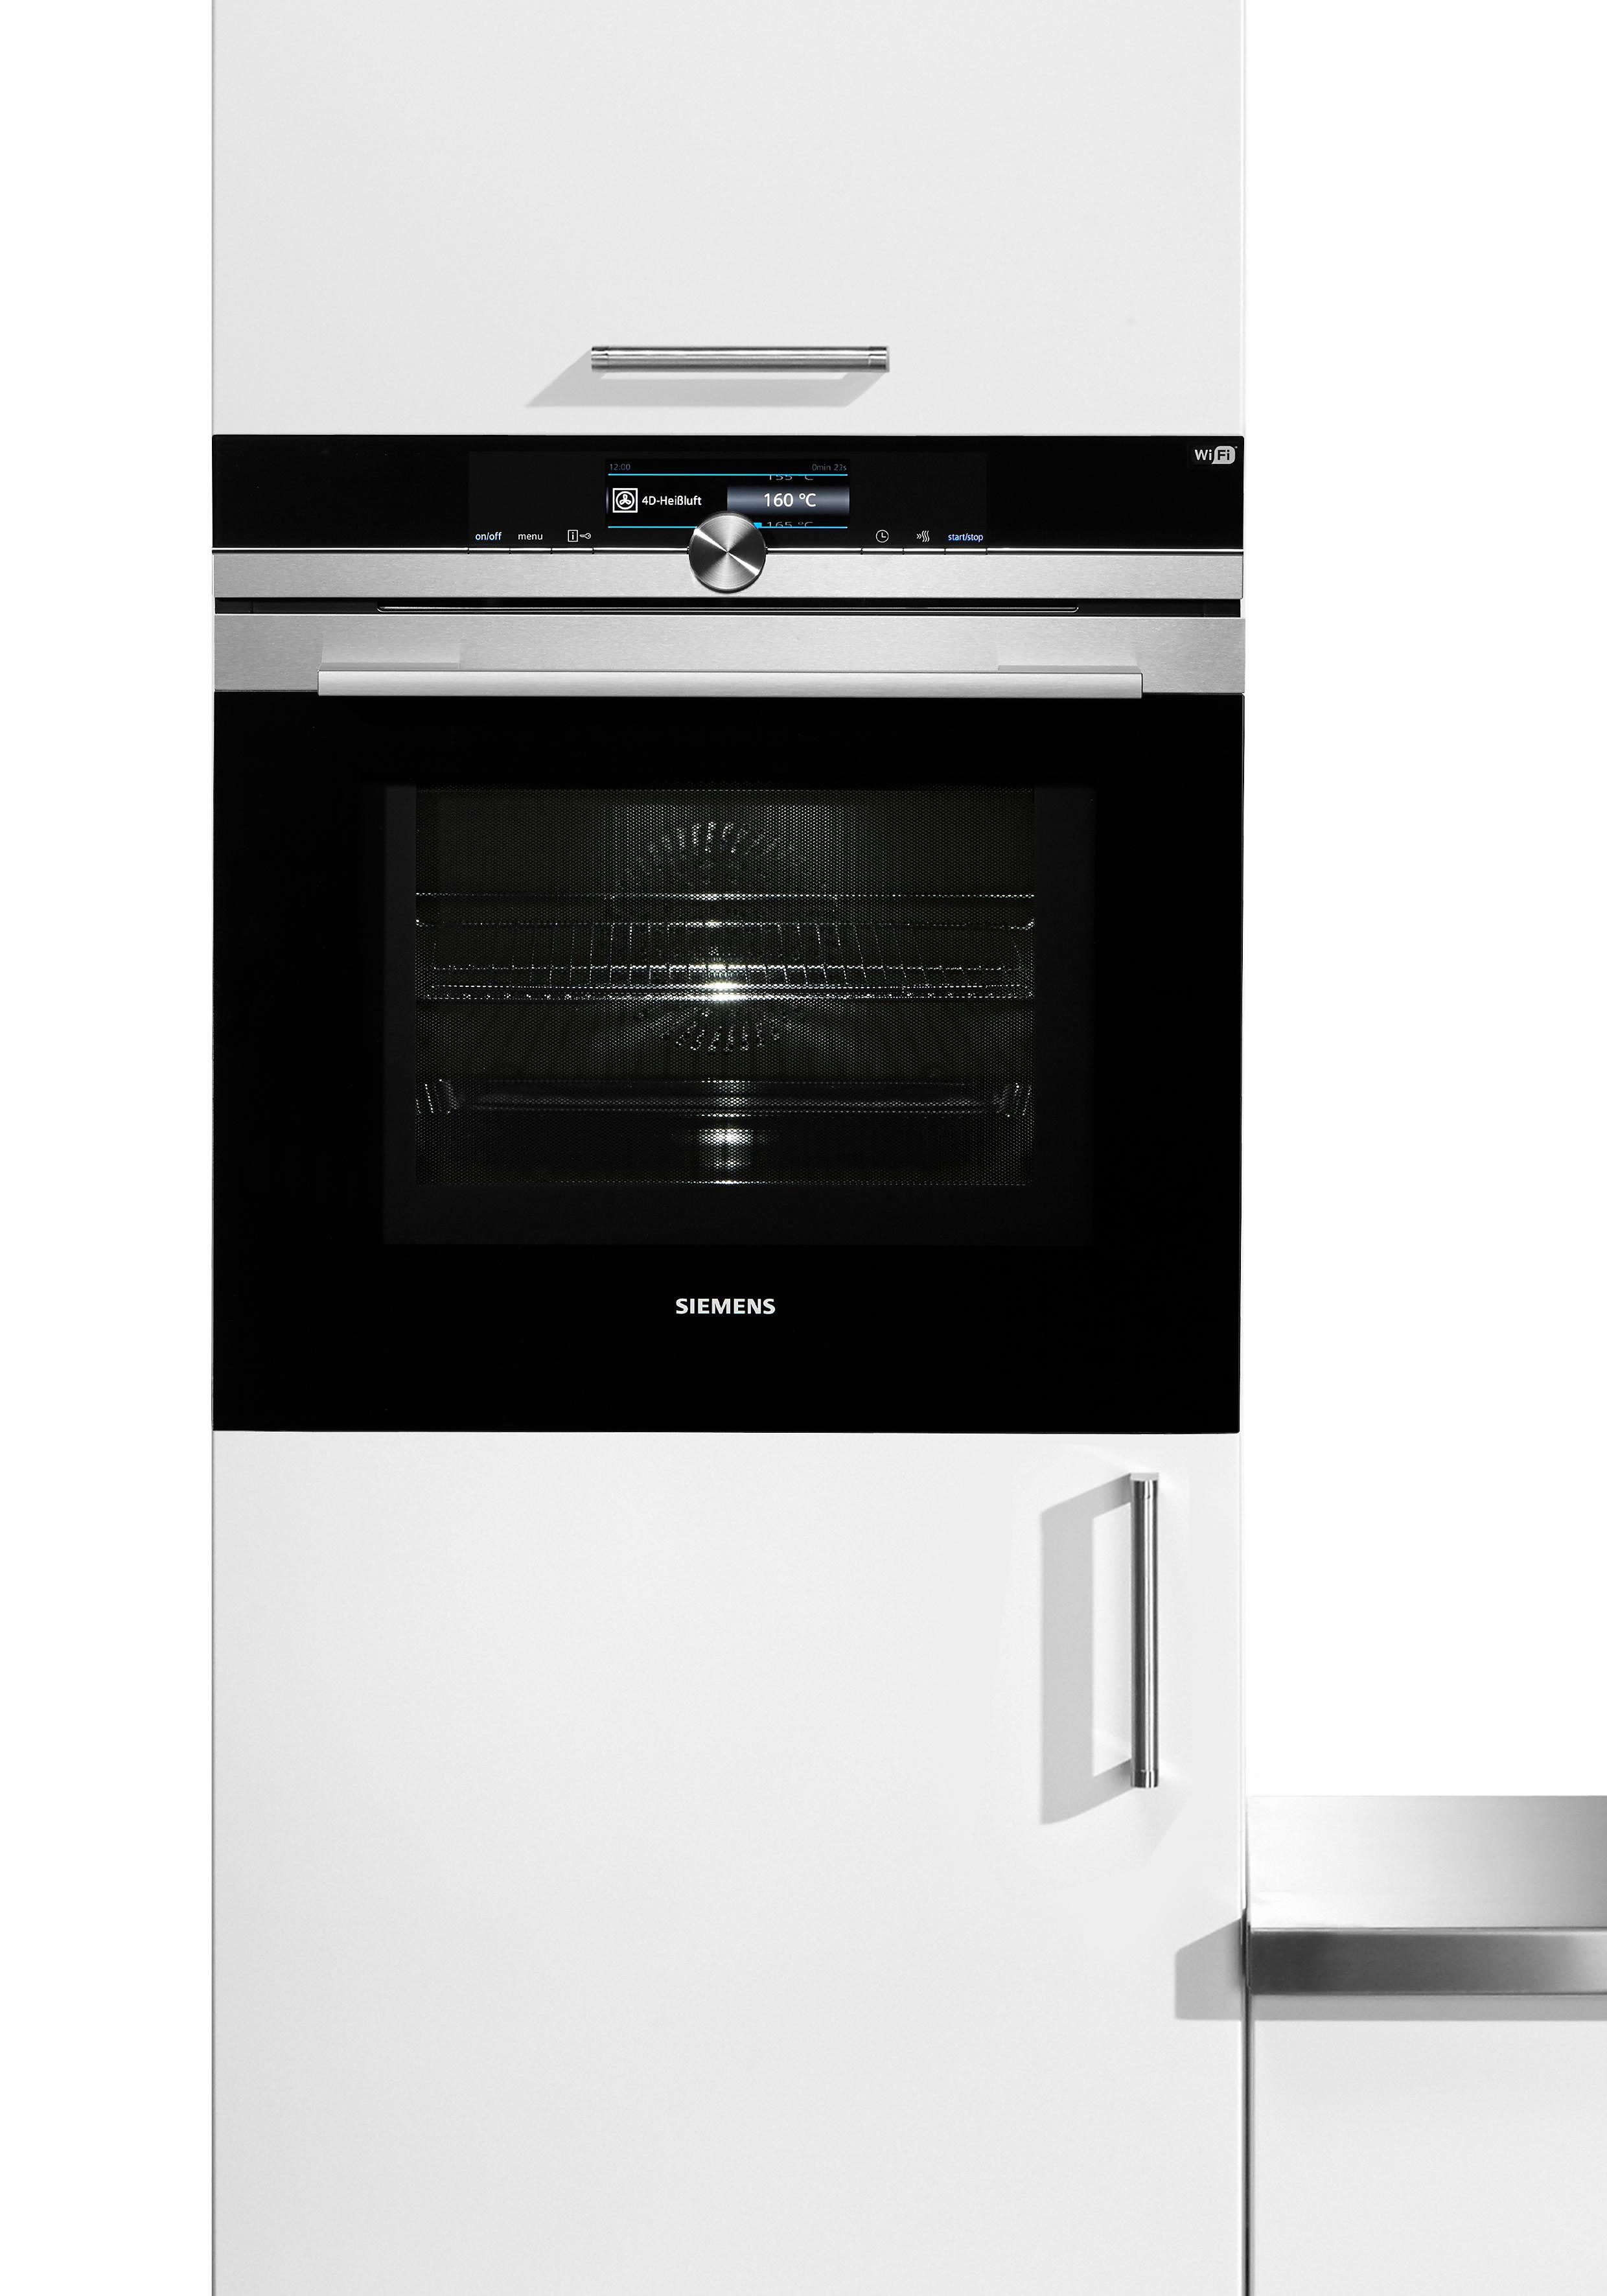 Siemens Backofen mit Mikrowelle iQ700 HM638GRS6 - Home Connect fähig